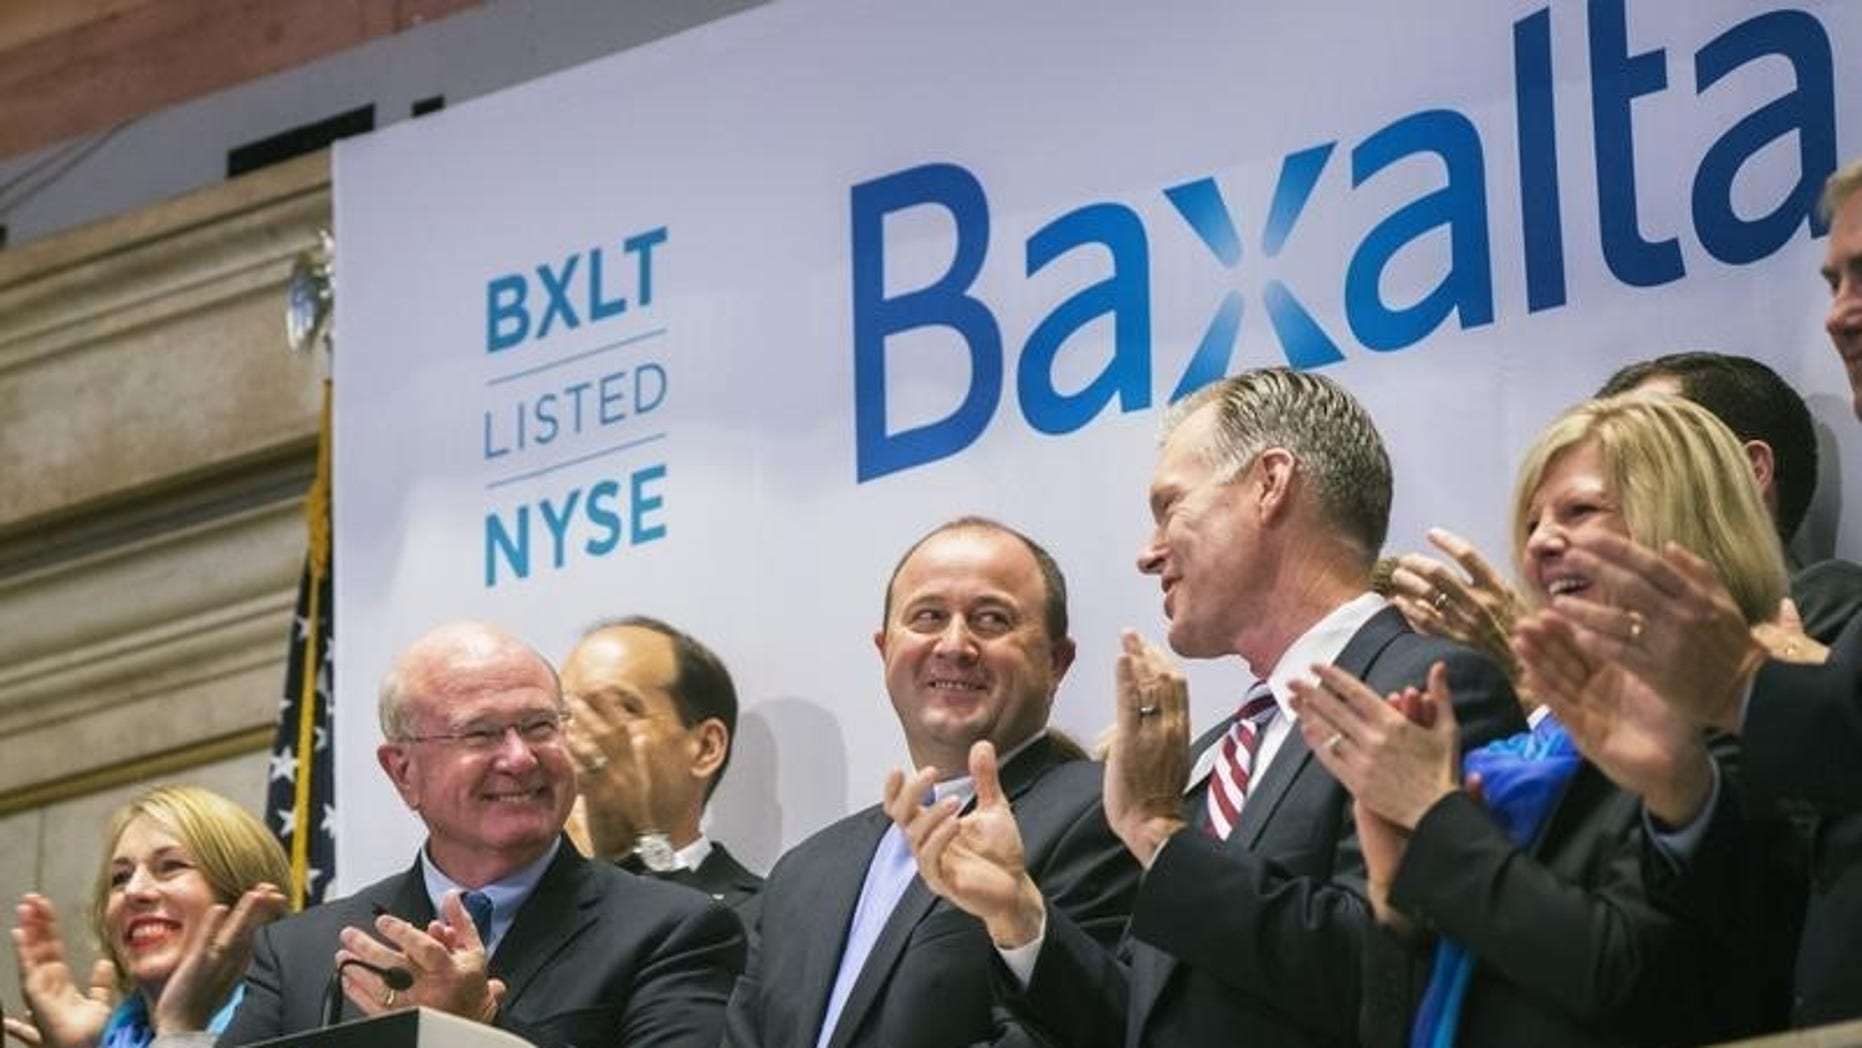 Ludwig Hantson (C), Chief Executive Officer of Baxalta, celebrates the company's IPO after ringing the opening bell above the floor of the New York Stock Exchange, July 1, 2015. REUTERS/Lucas Jackson